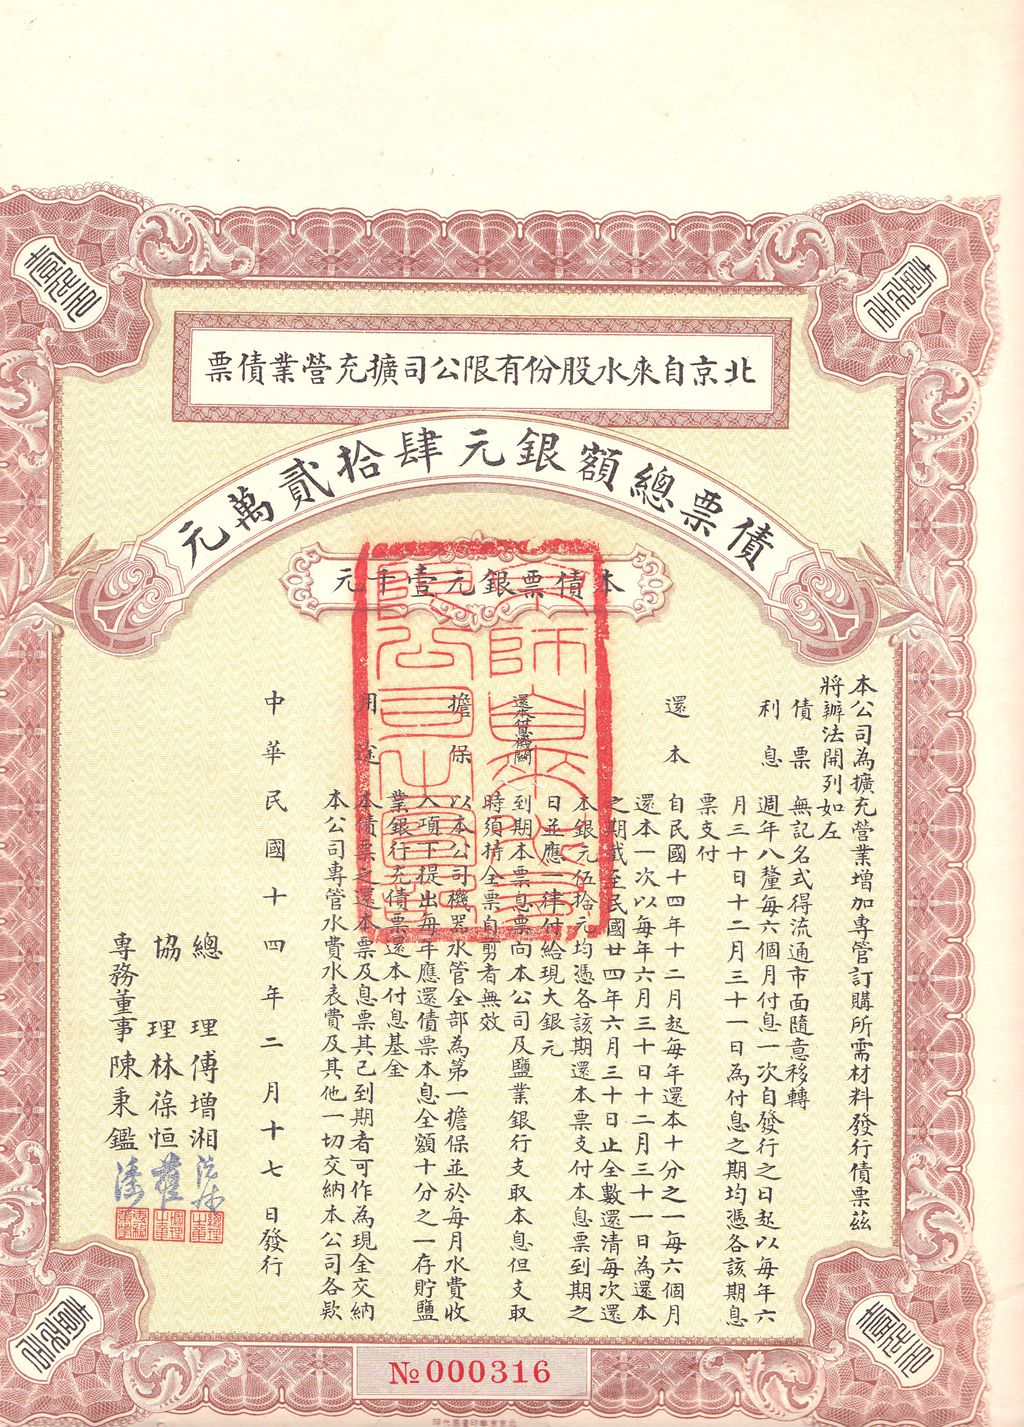 B3005, Peking Tap Water Co, 8% Bond, 1000 Dollars, China 1925